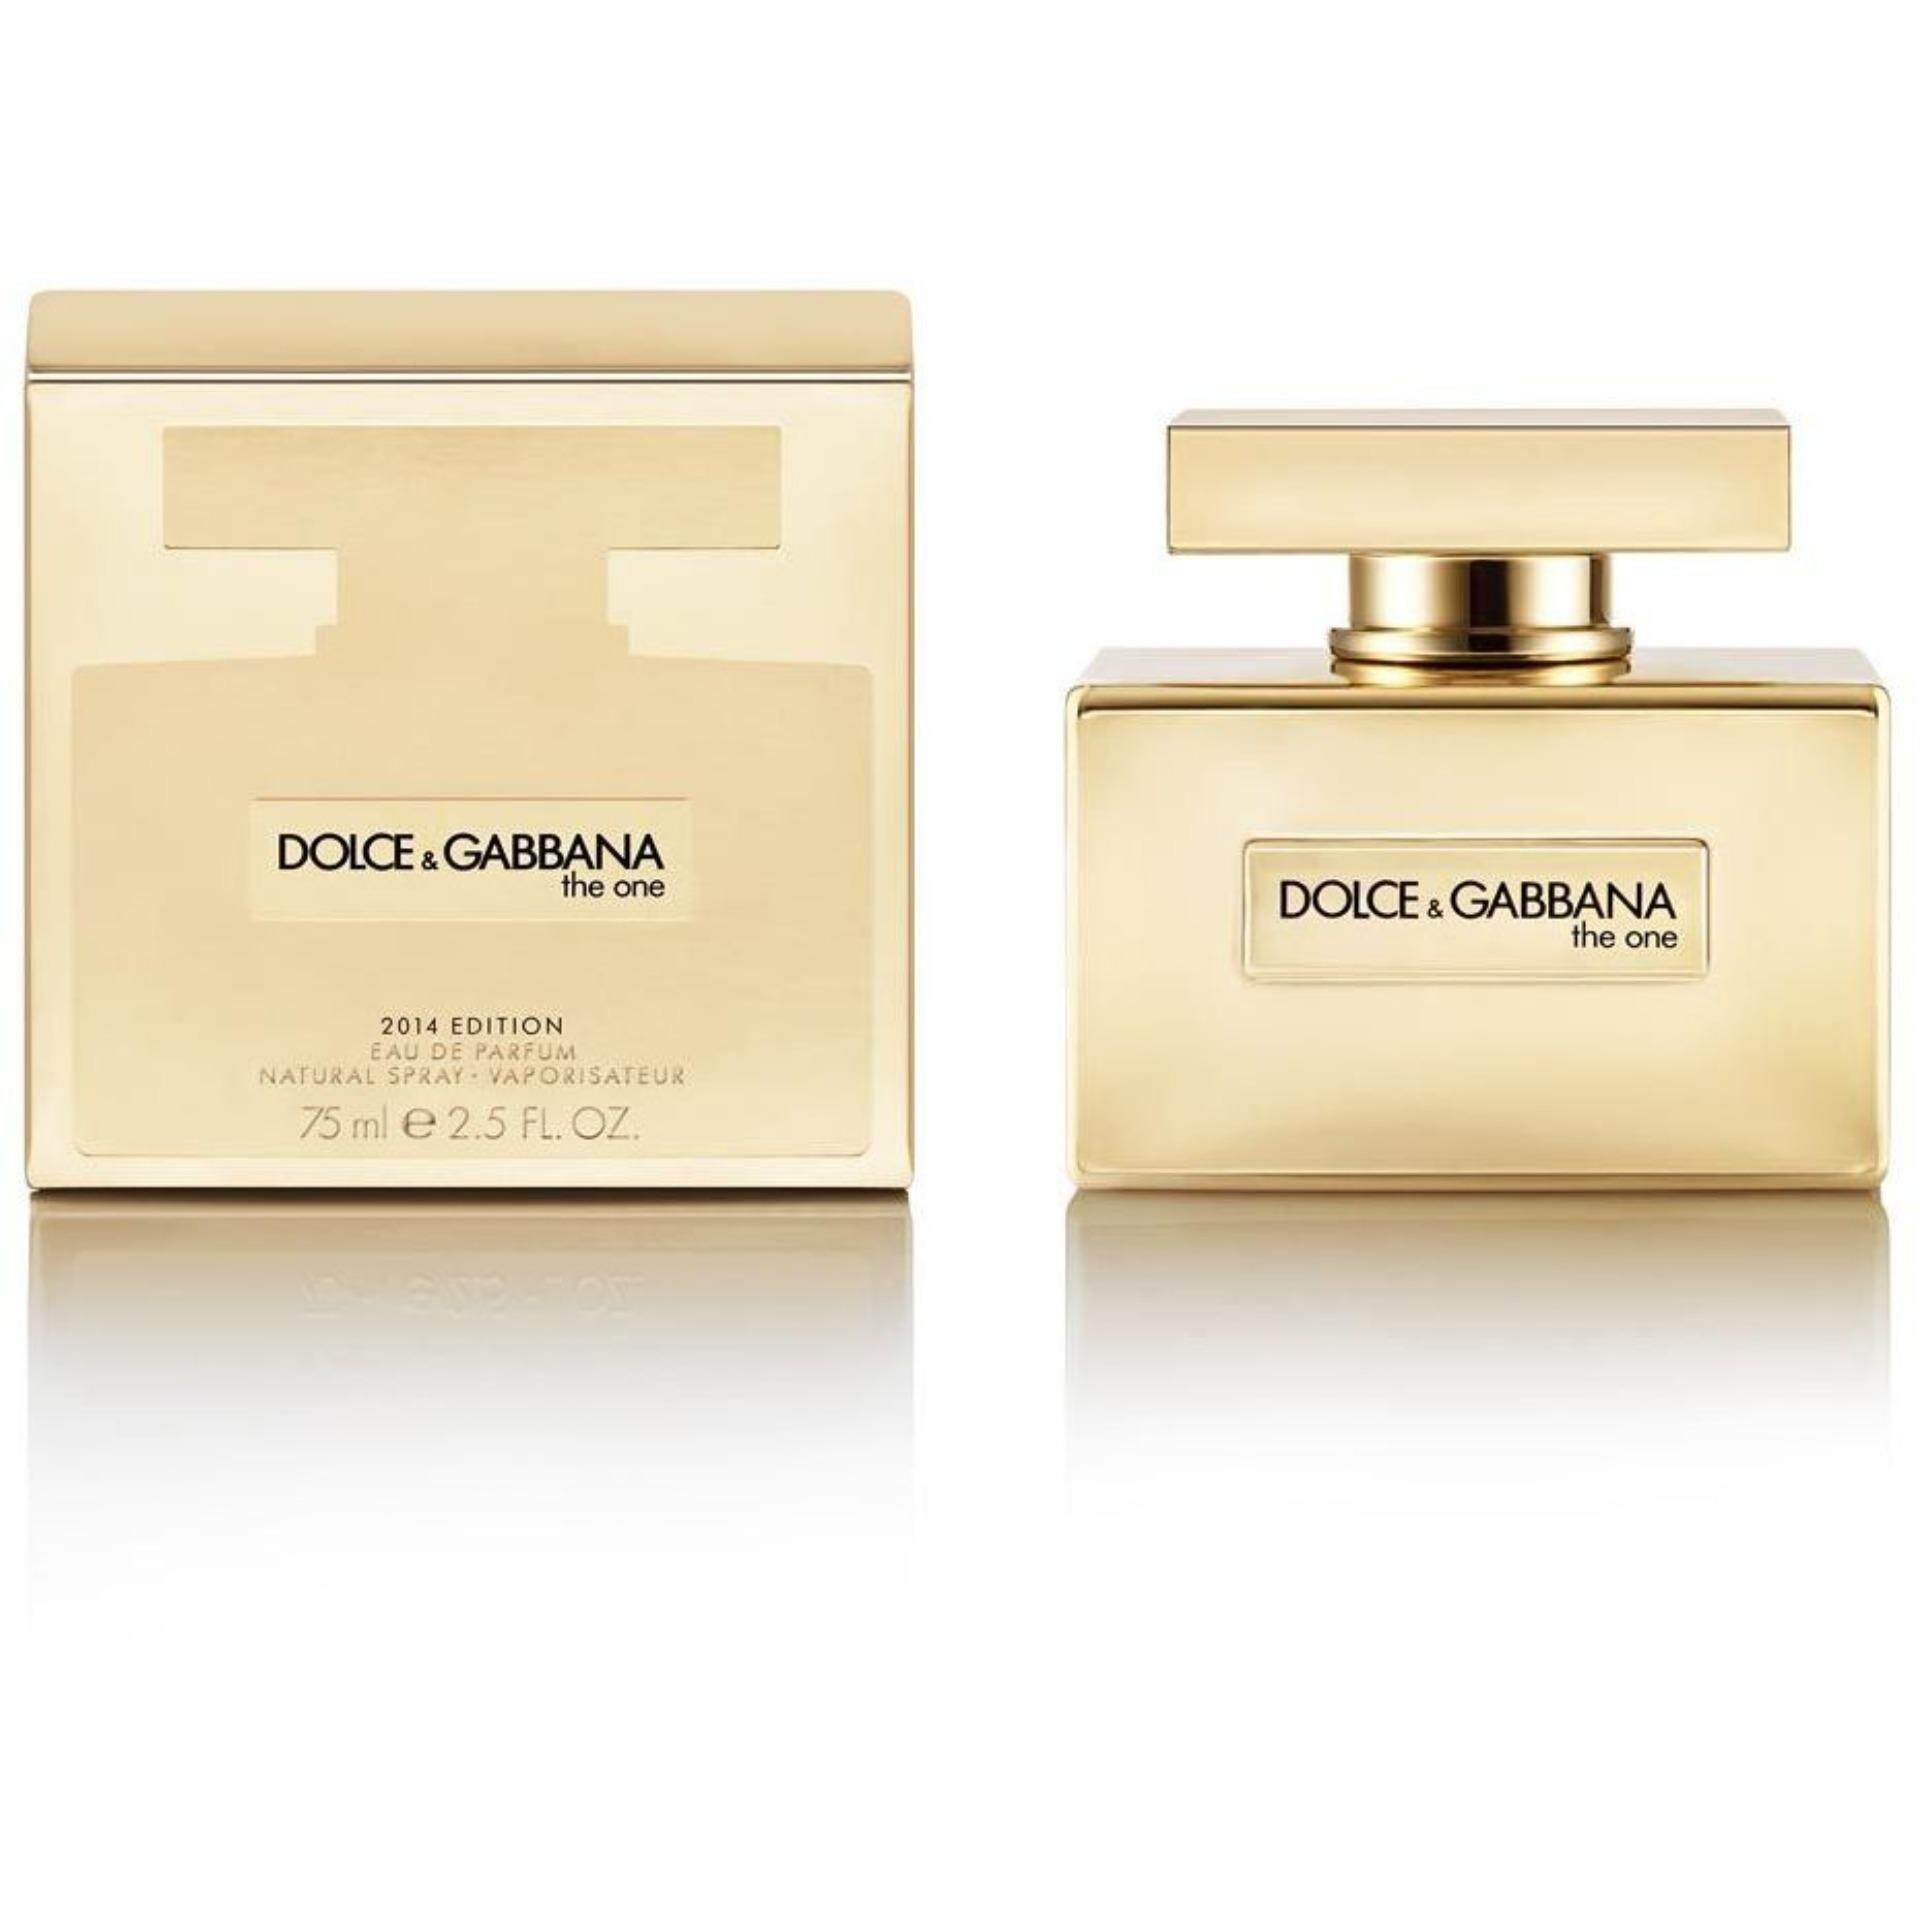 The One Gold Limited Edition by Dolce   Gabbaana for Women Eau de Parfum  75ml 69f6c65cefaf